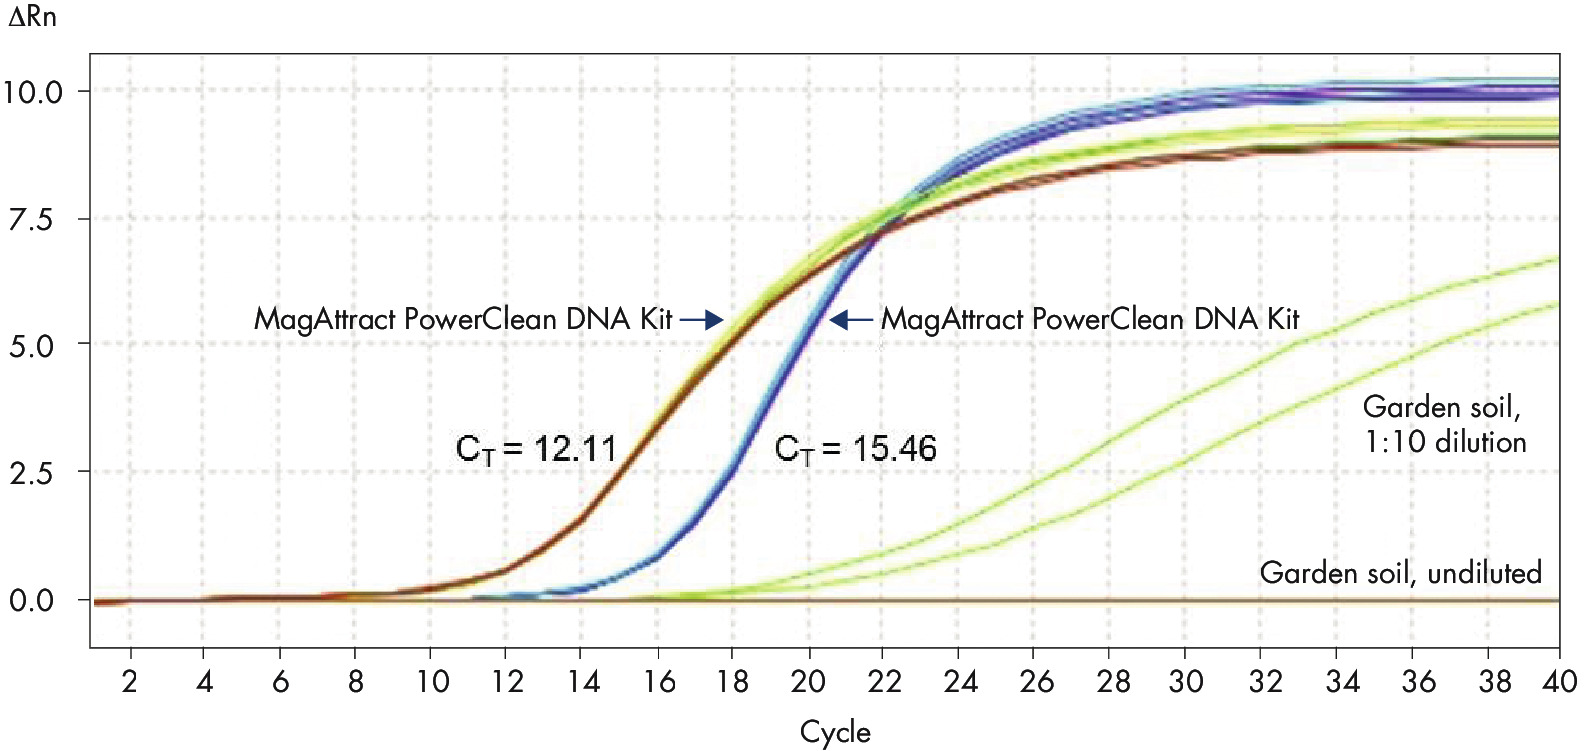 Figure 3. Clean up for downstream processes using the MagAttract PowerClean DNA Kit